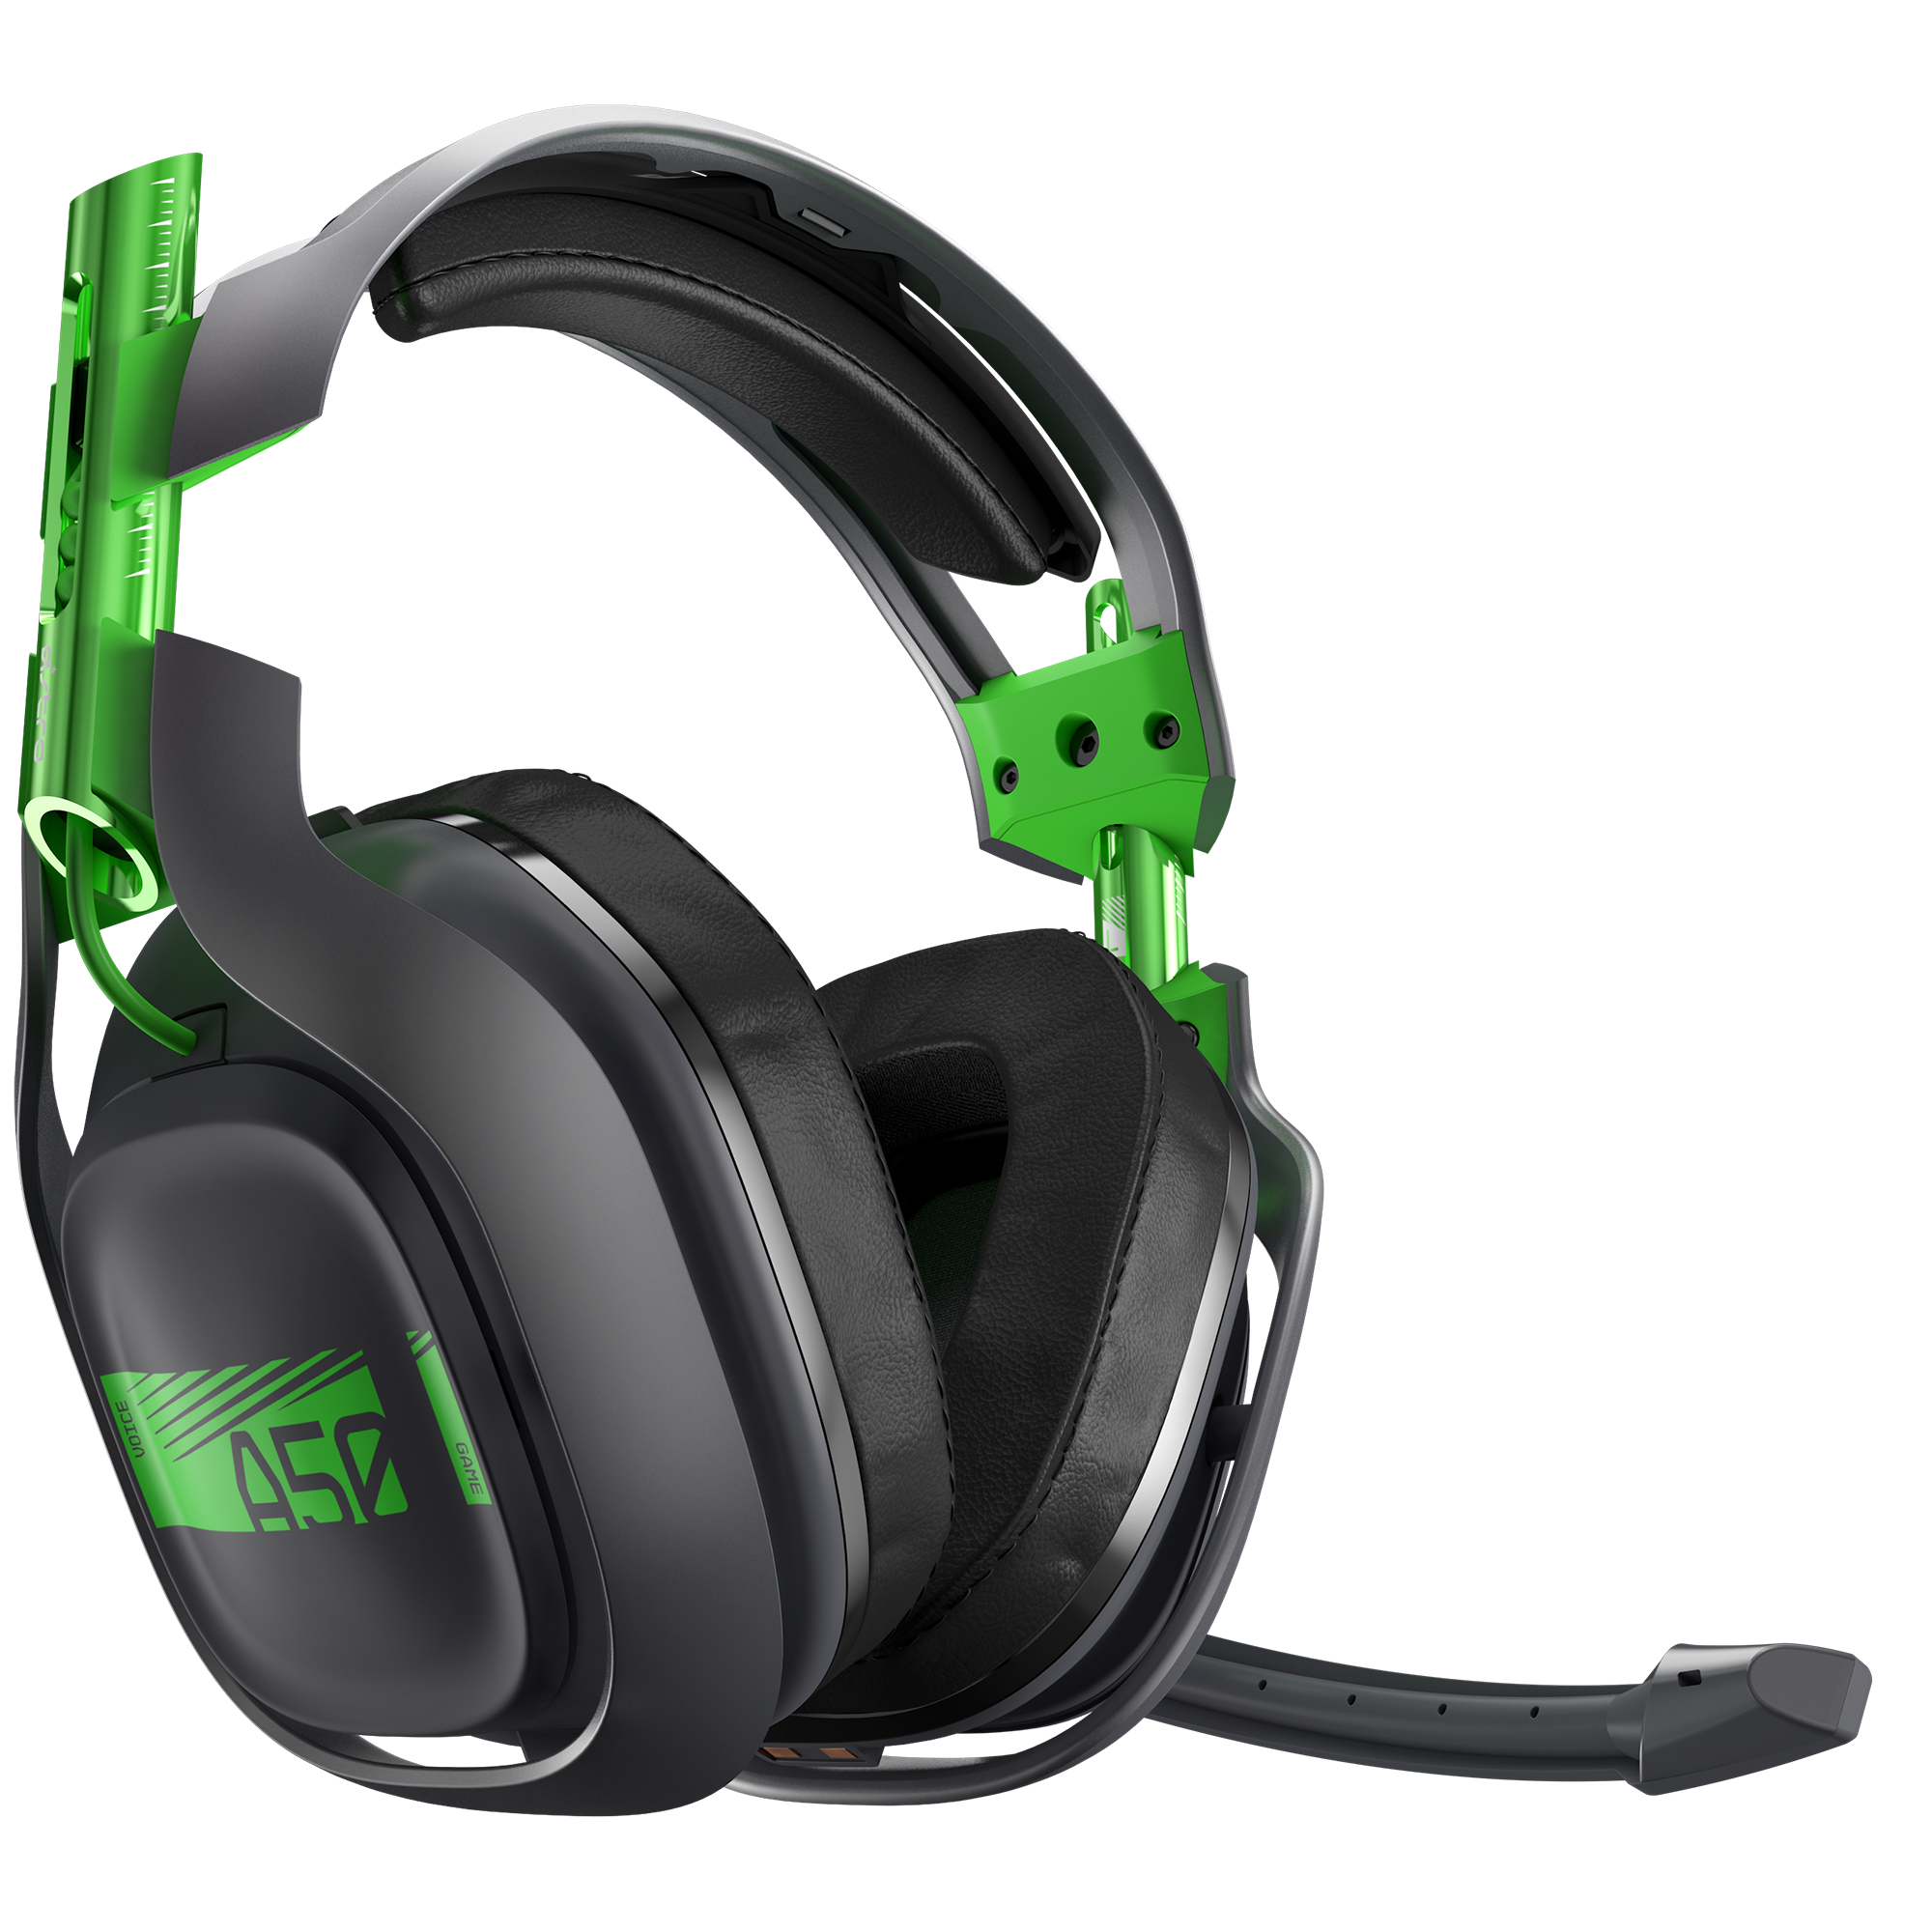 astro a50 headset current firmware version